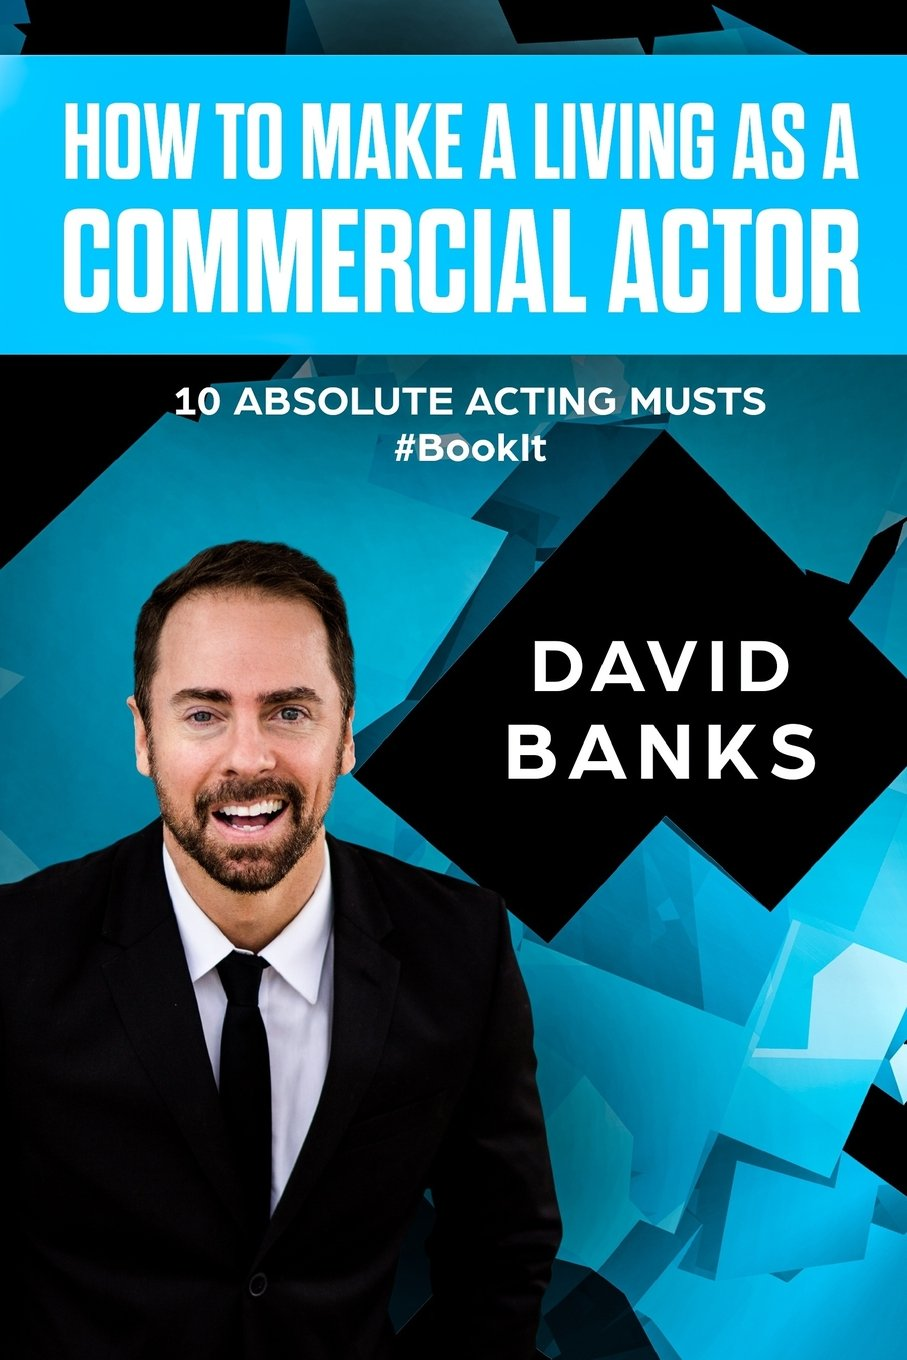 How To Make a Living As a Commercial Actor: Tips to Give You the Ultimate Advantage in the Auditioning Game